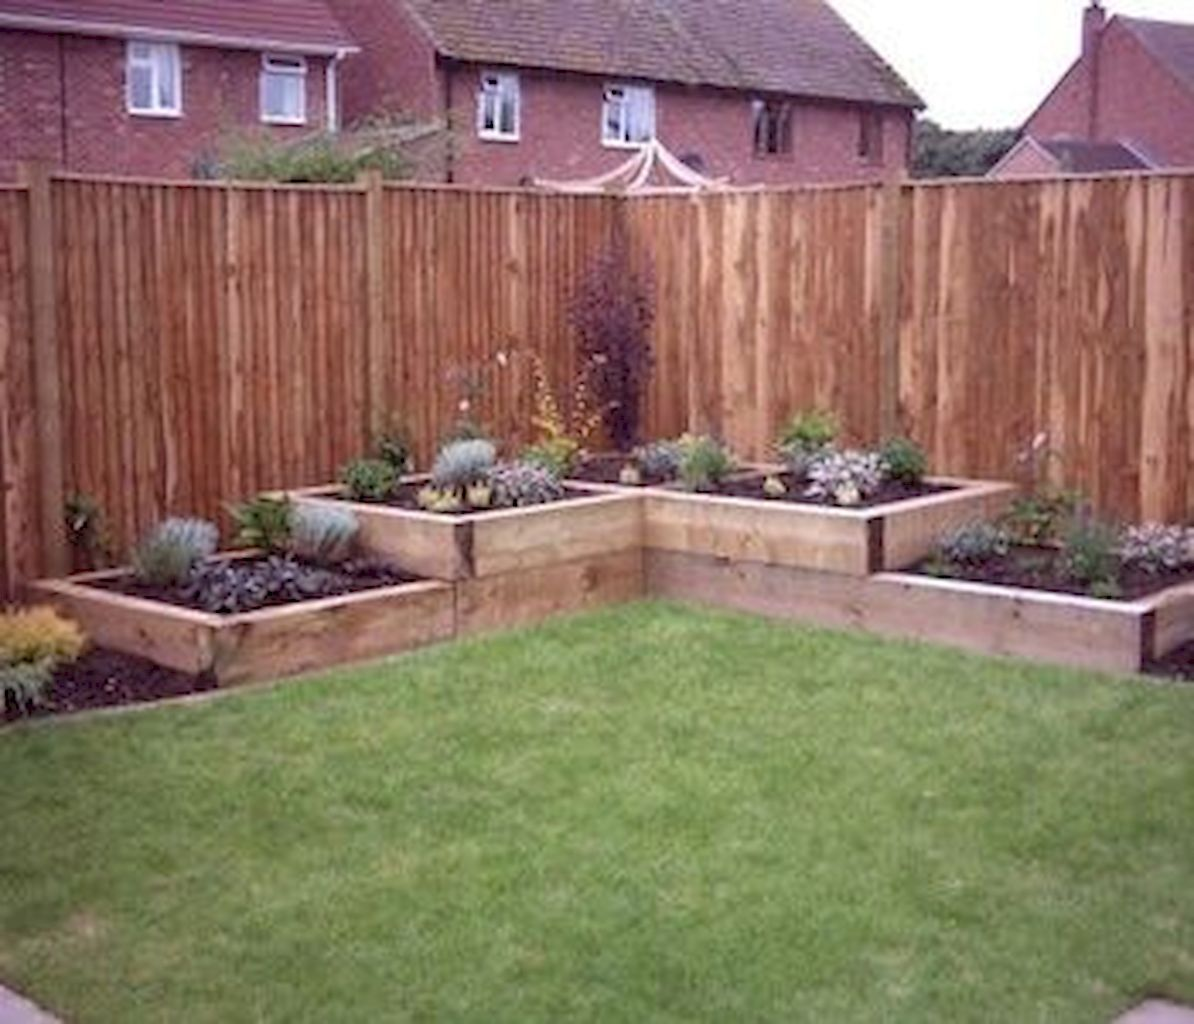 40 beautiful backyard landscaping ideas on a budget for Garden bed ideas